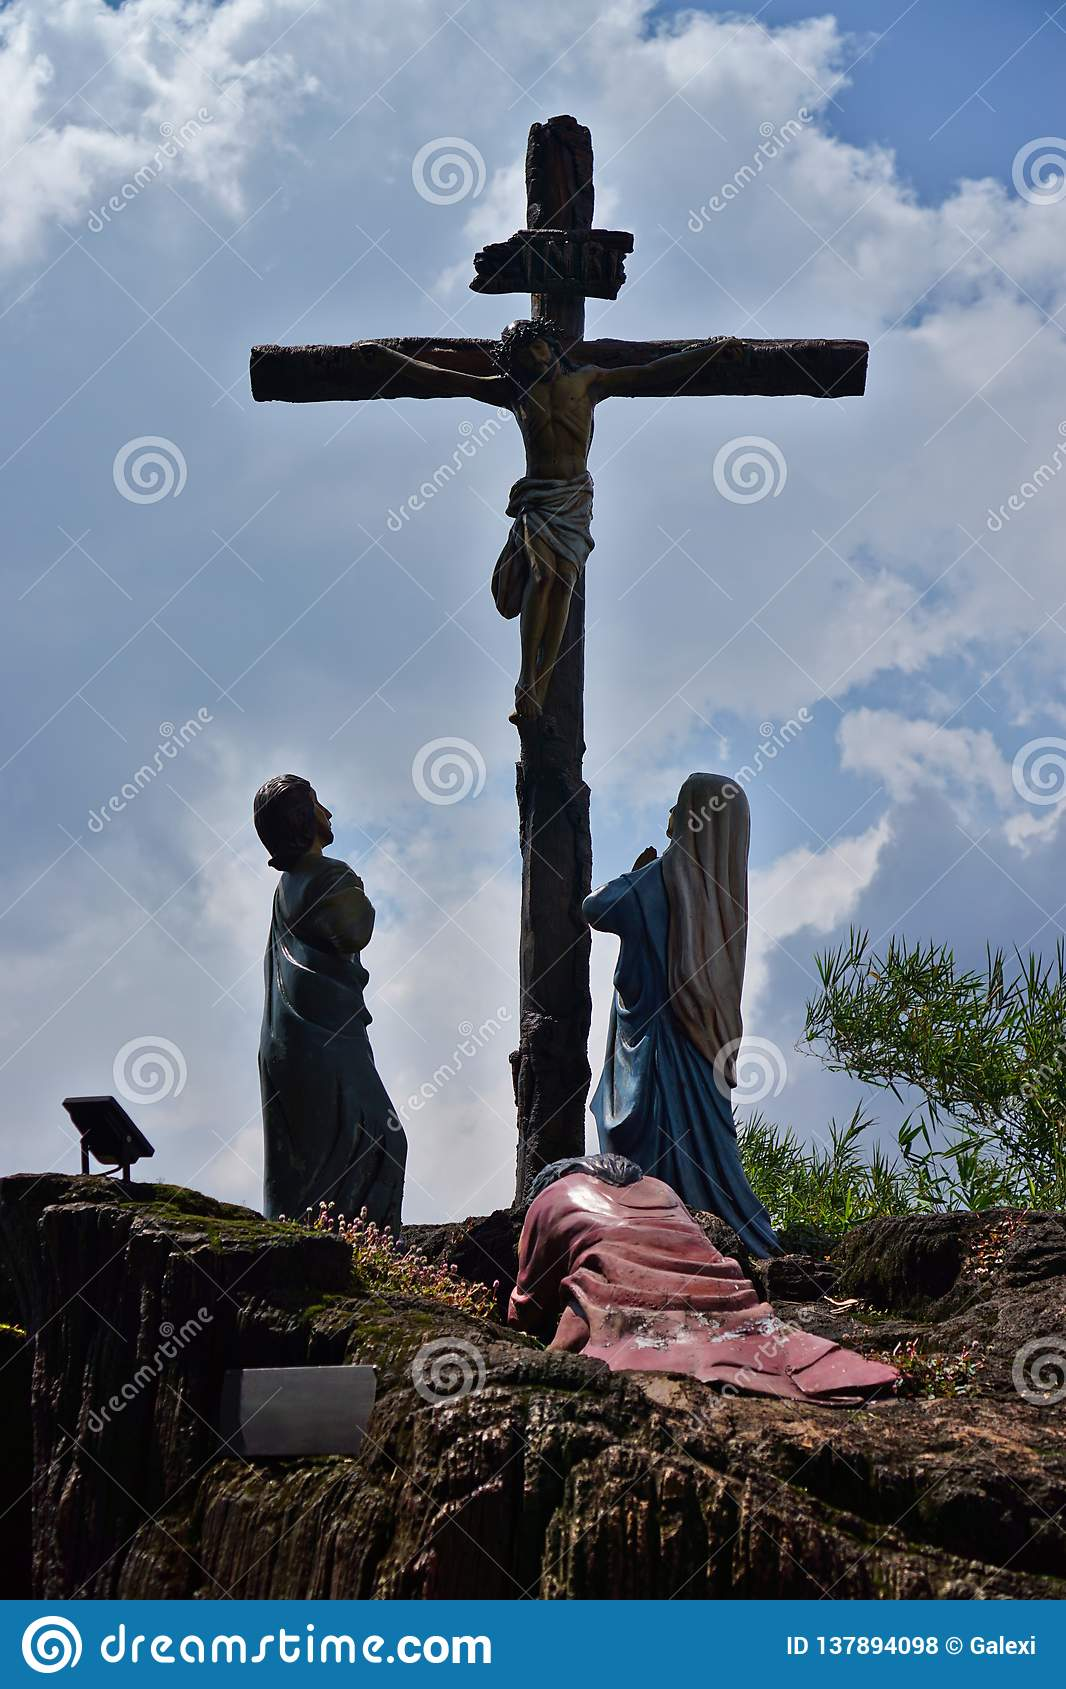 Statues of Jesus crucified